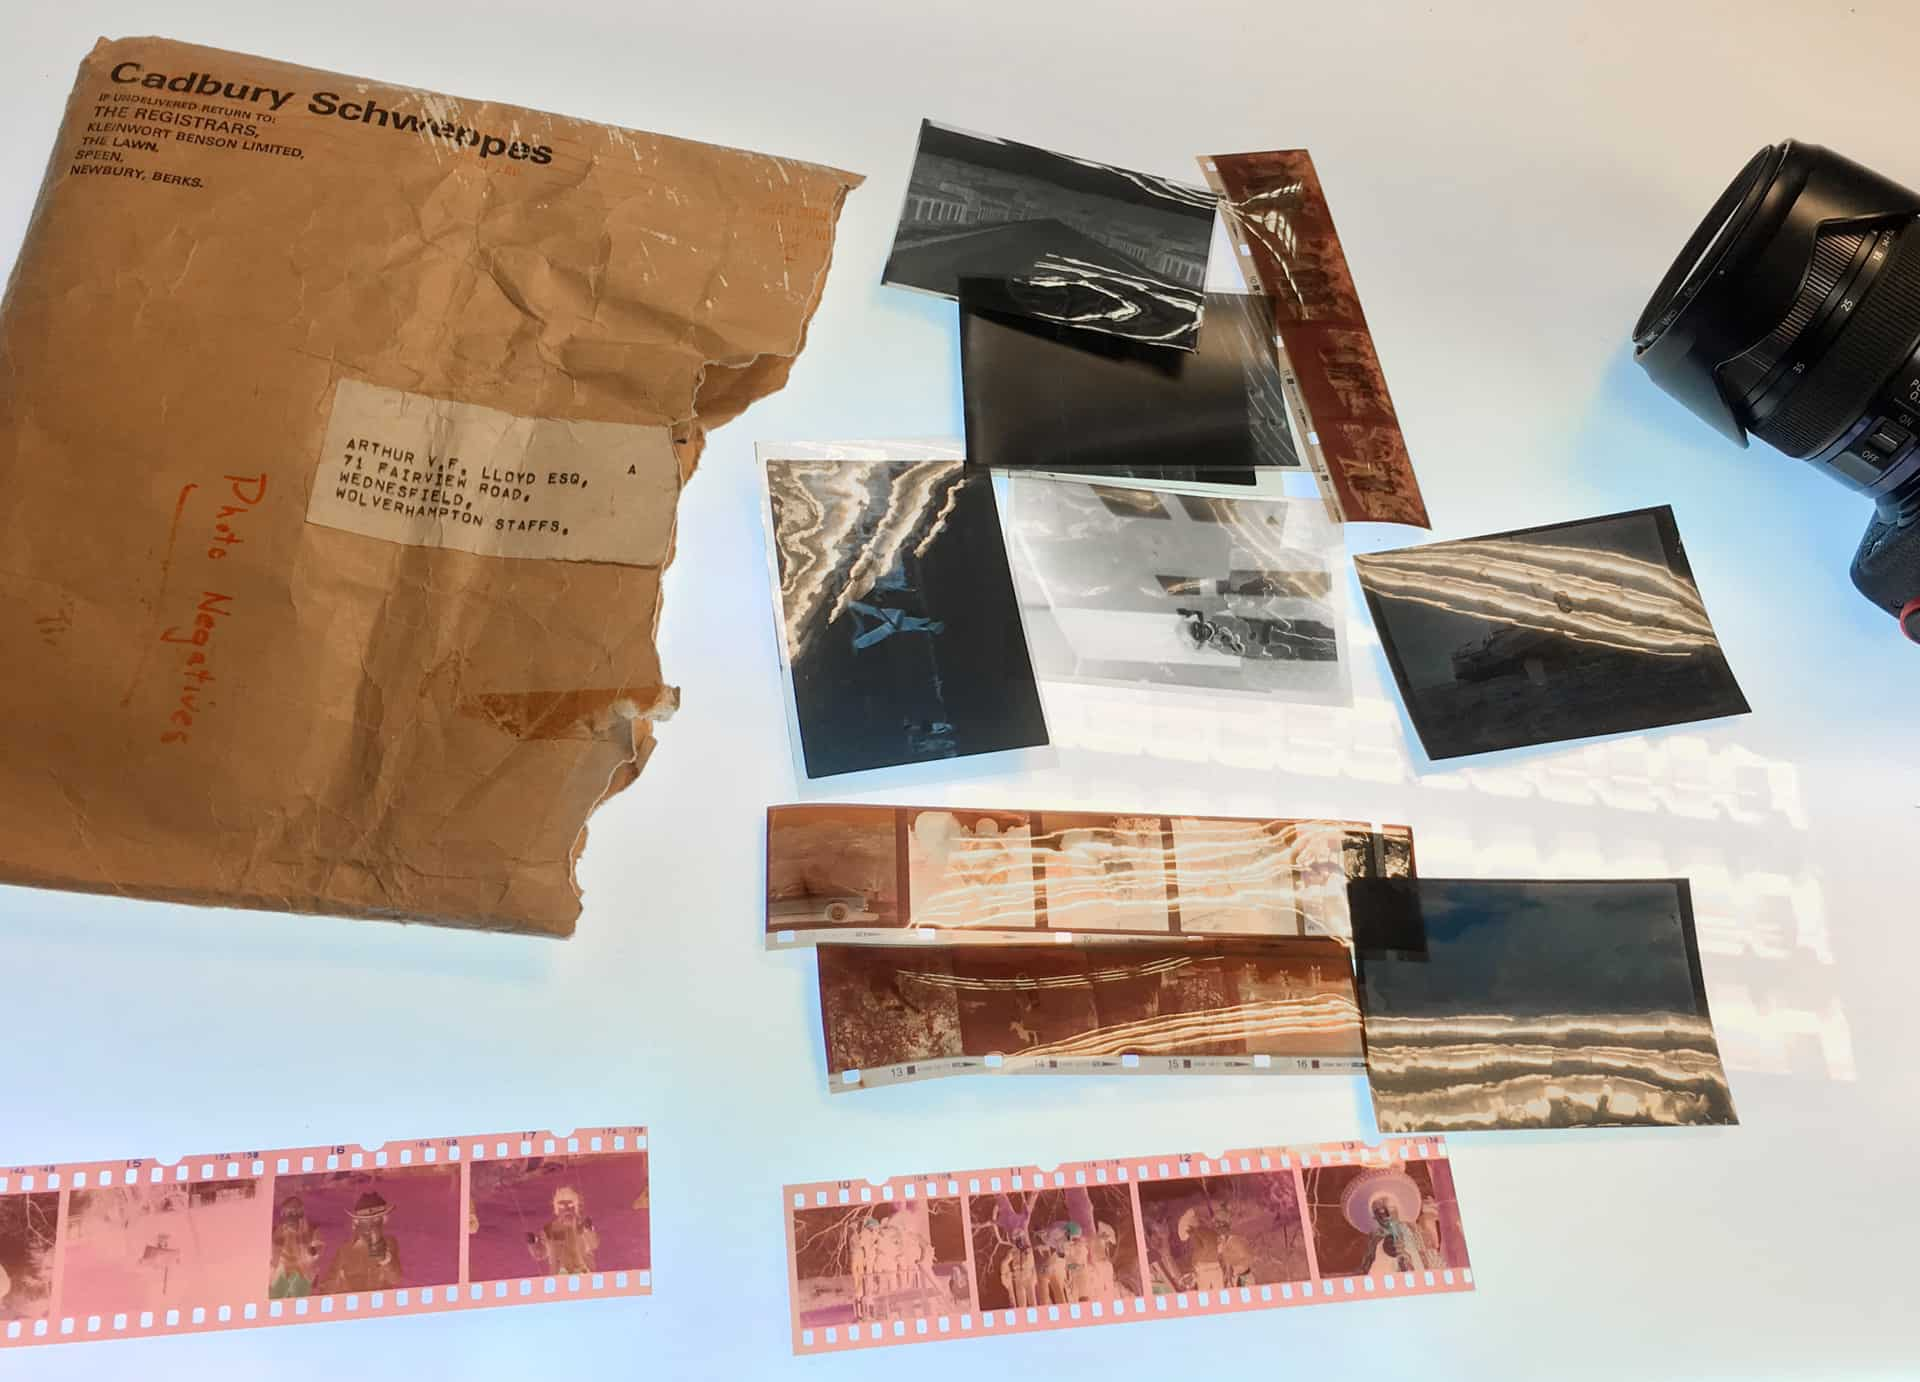 A selection negatives ready for scanning